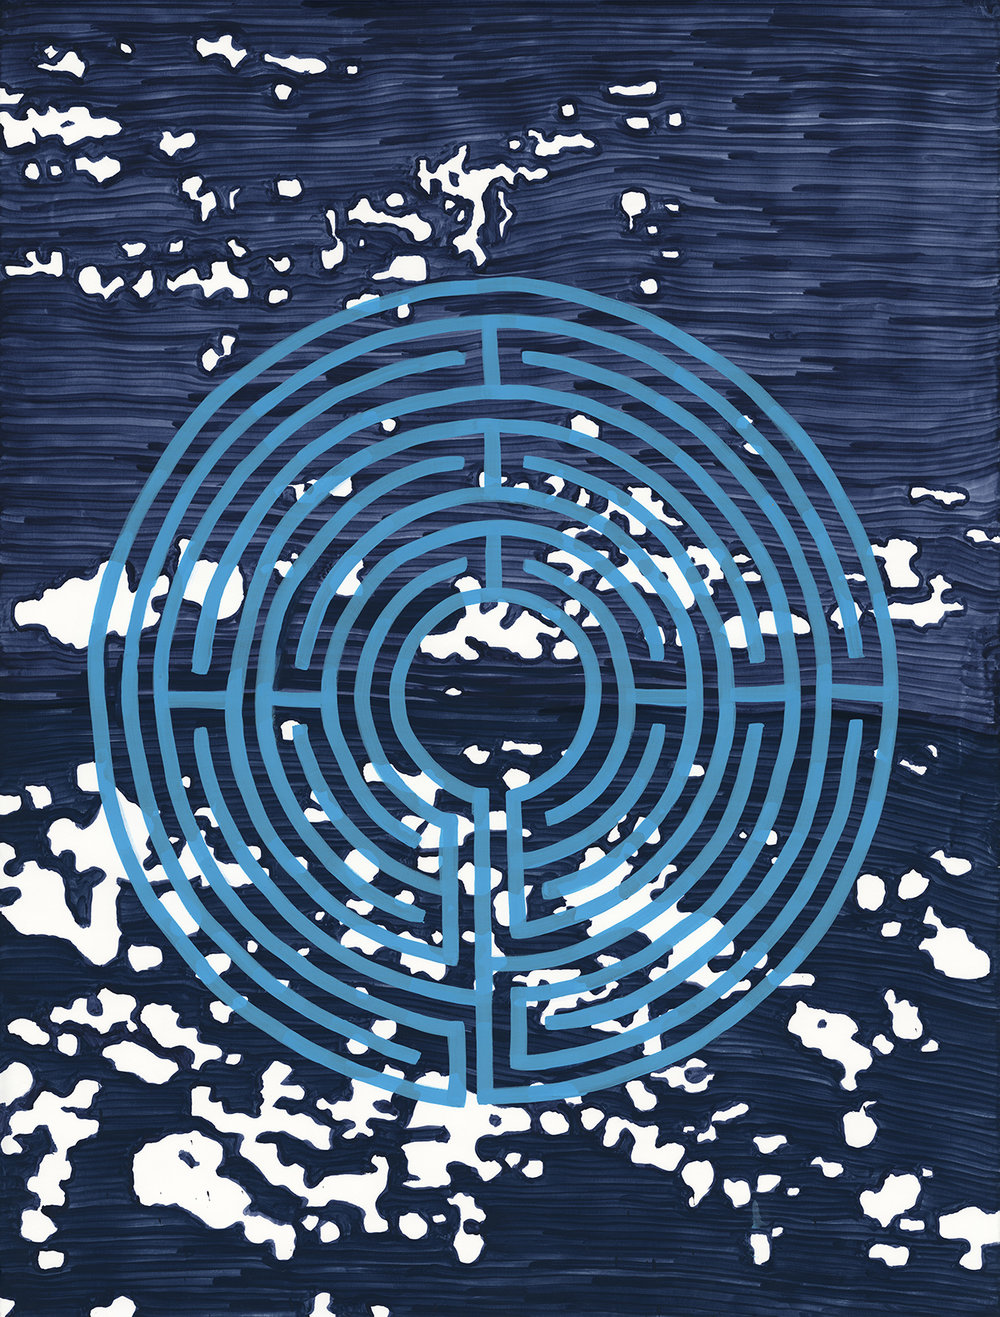 Labyrinth-Water-72dpi.jpg